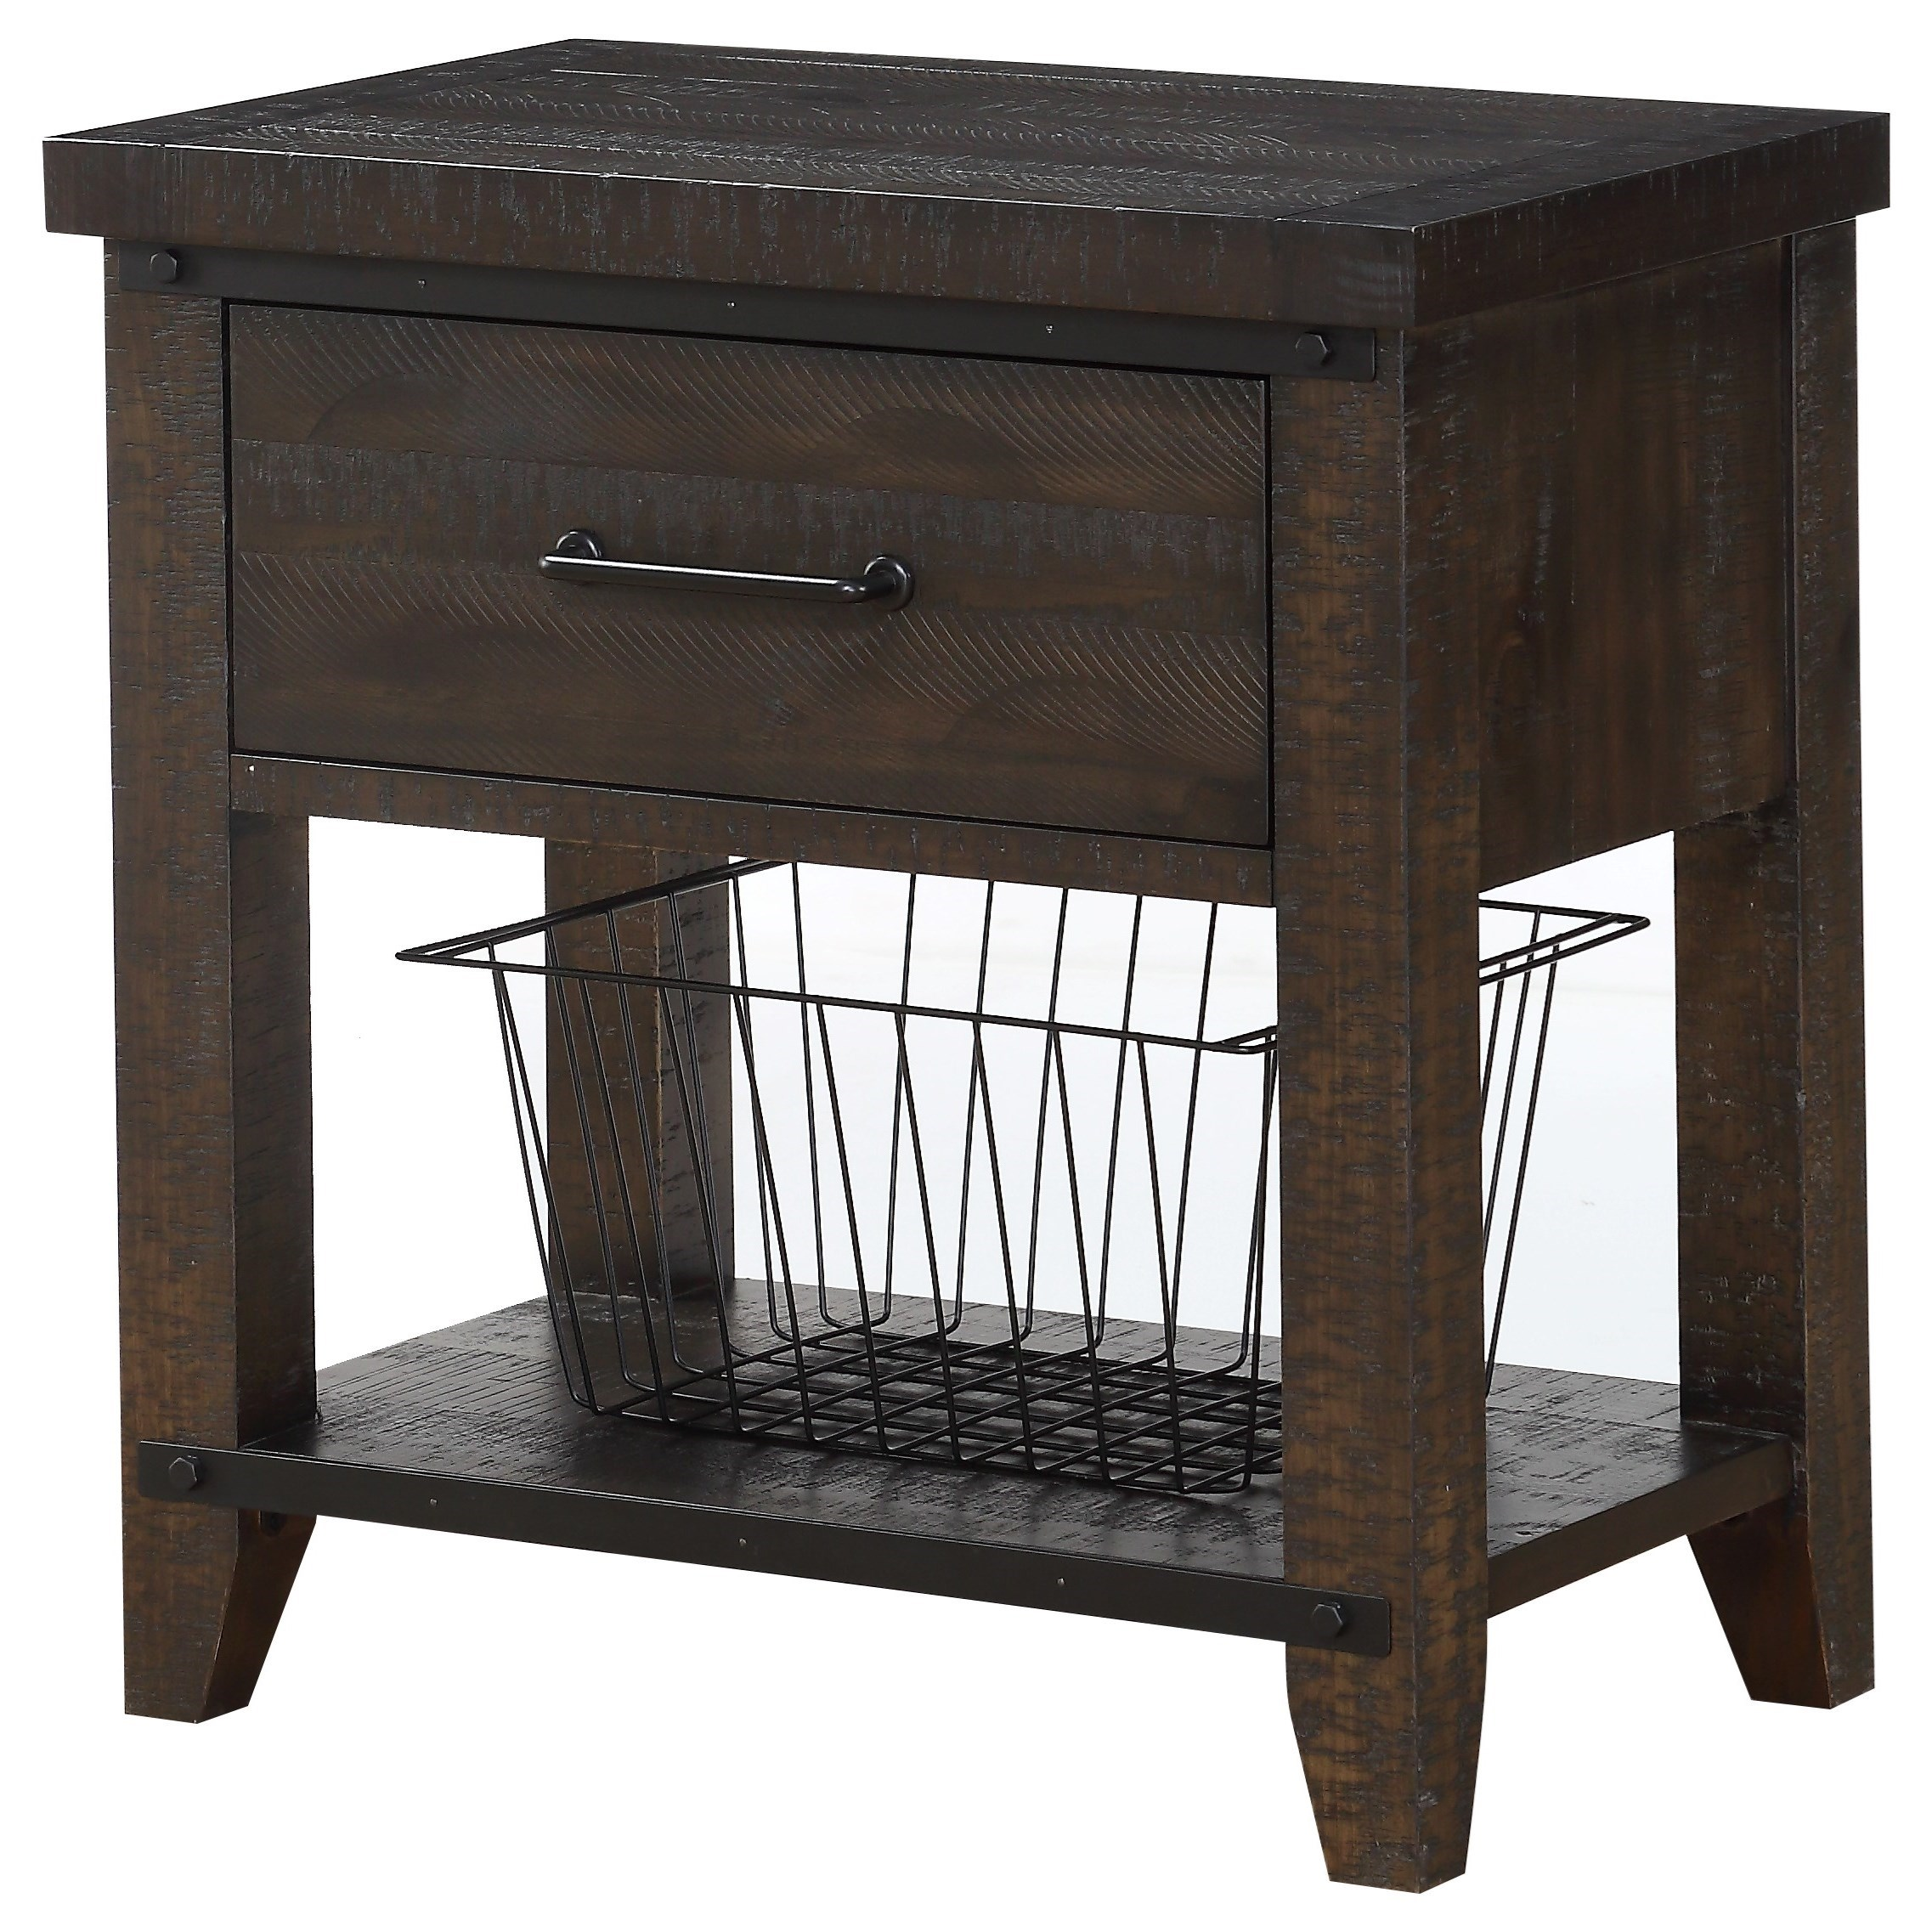 1-Drawer Nightstand with Metal Basket